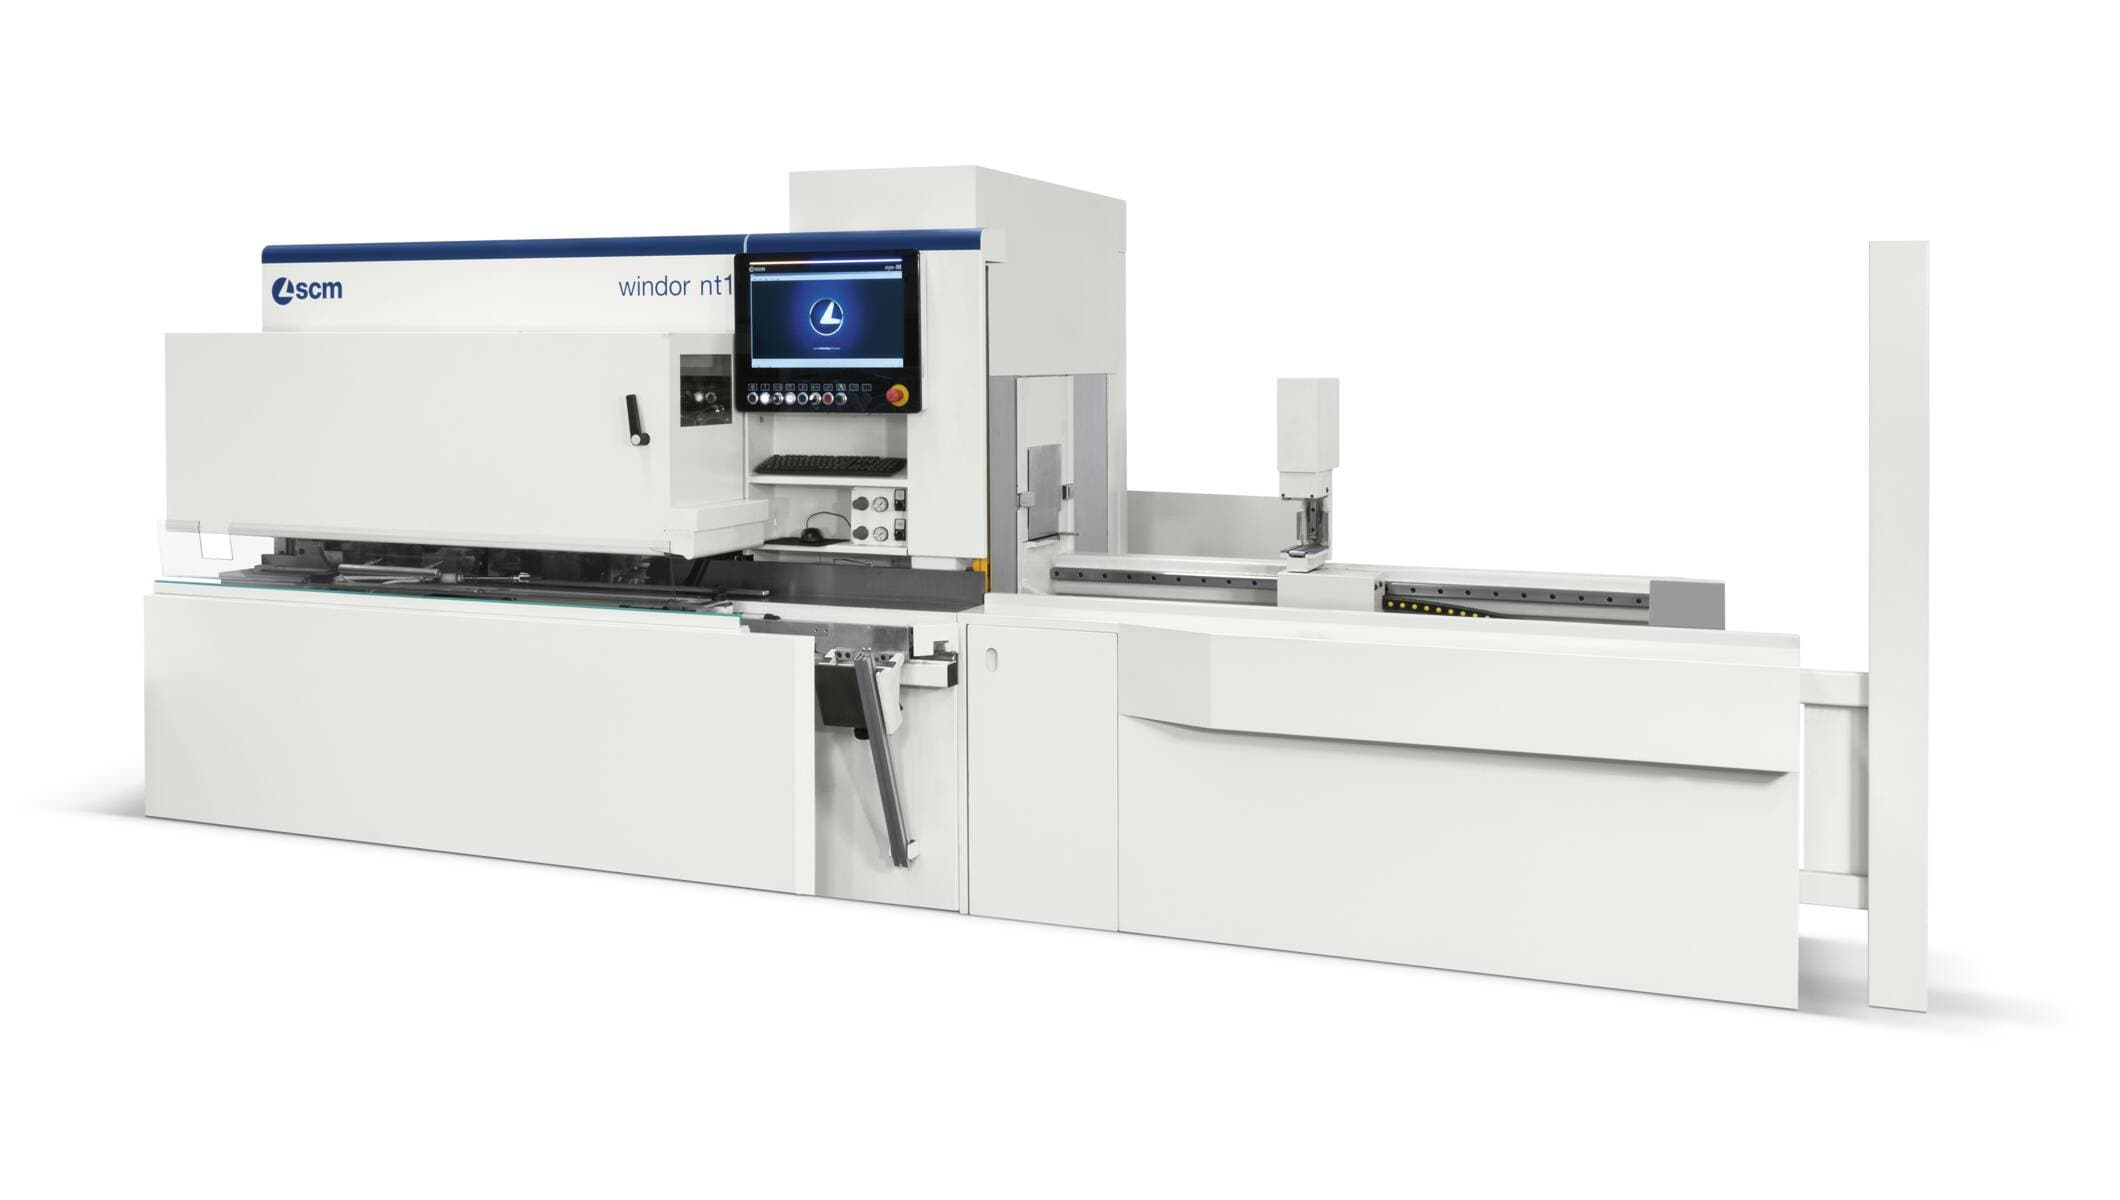 Systems for doors and windows - Angular machining centres for doors and windows - windor nt1